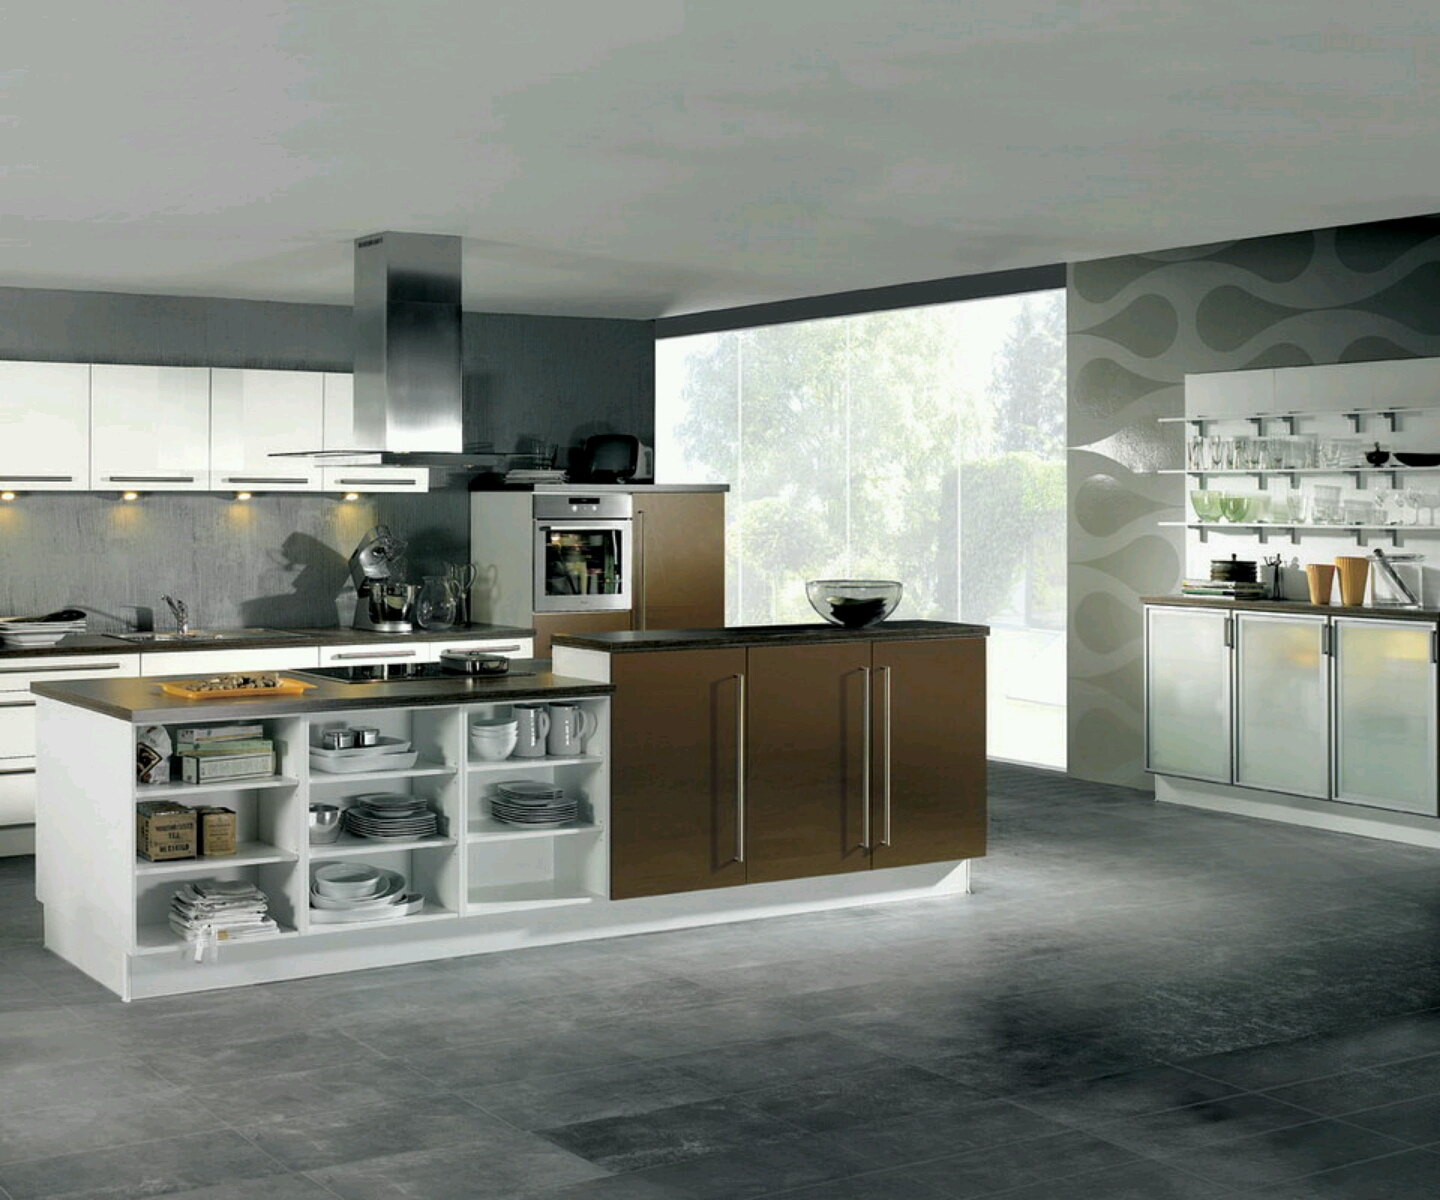 New home designs latest ultra modern kitchen designs ideas for Latest kitchen design ideas